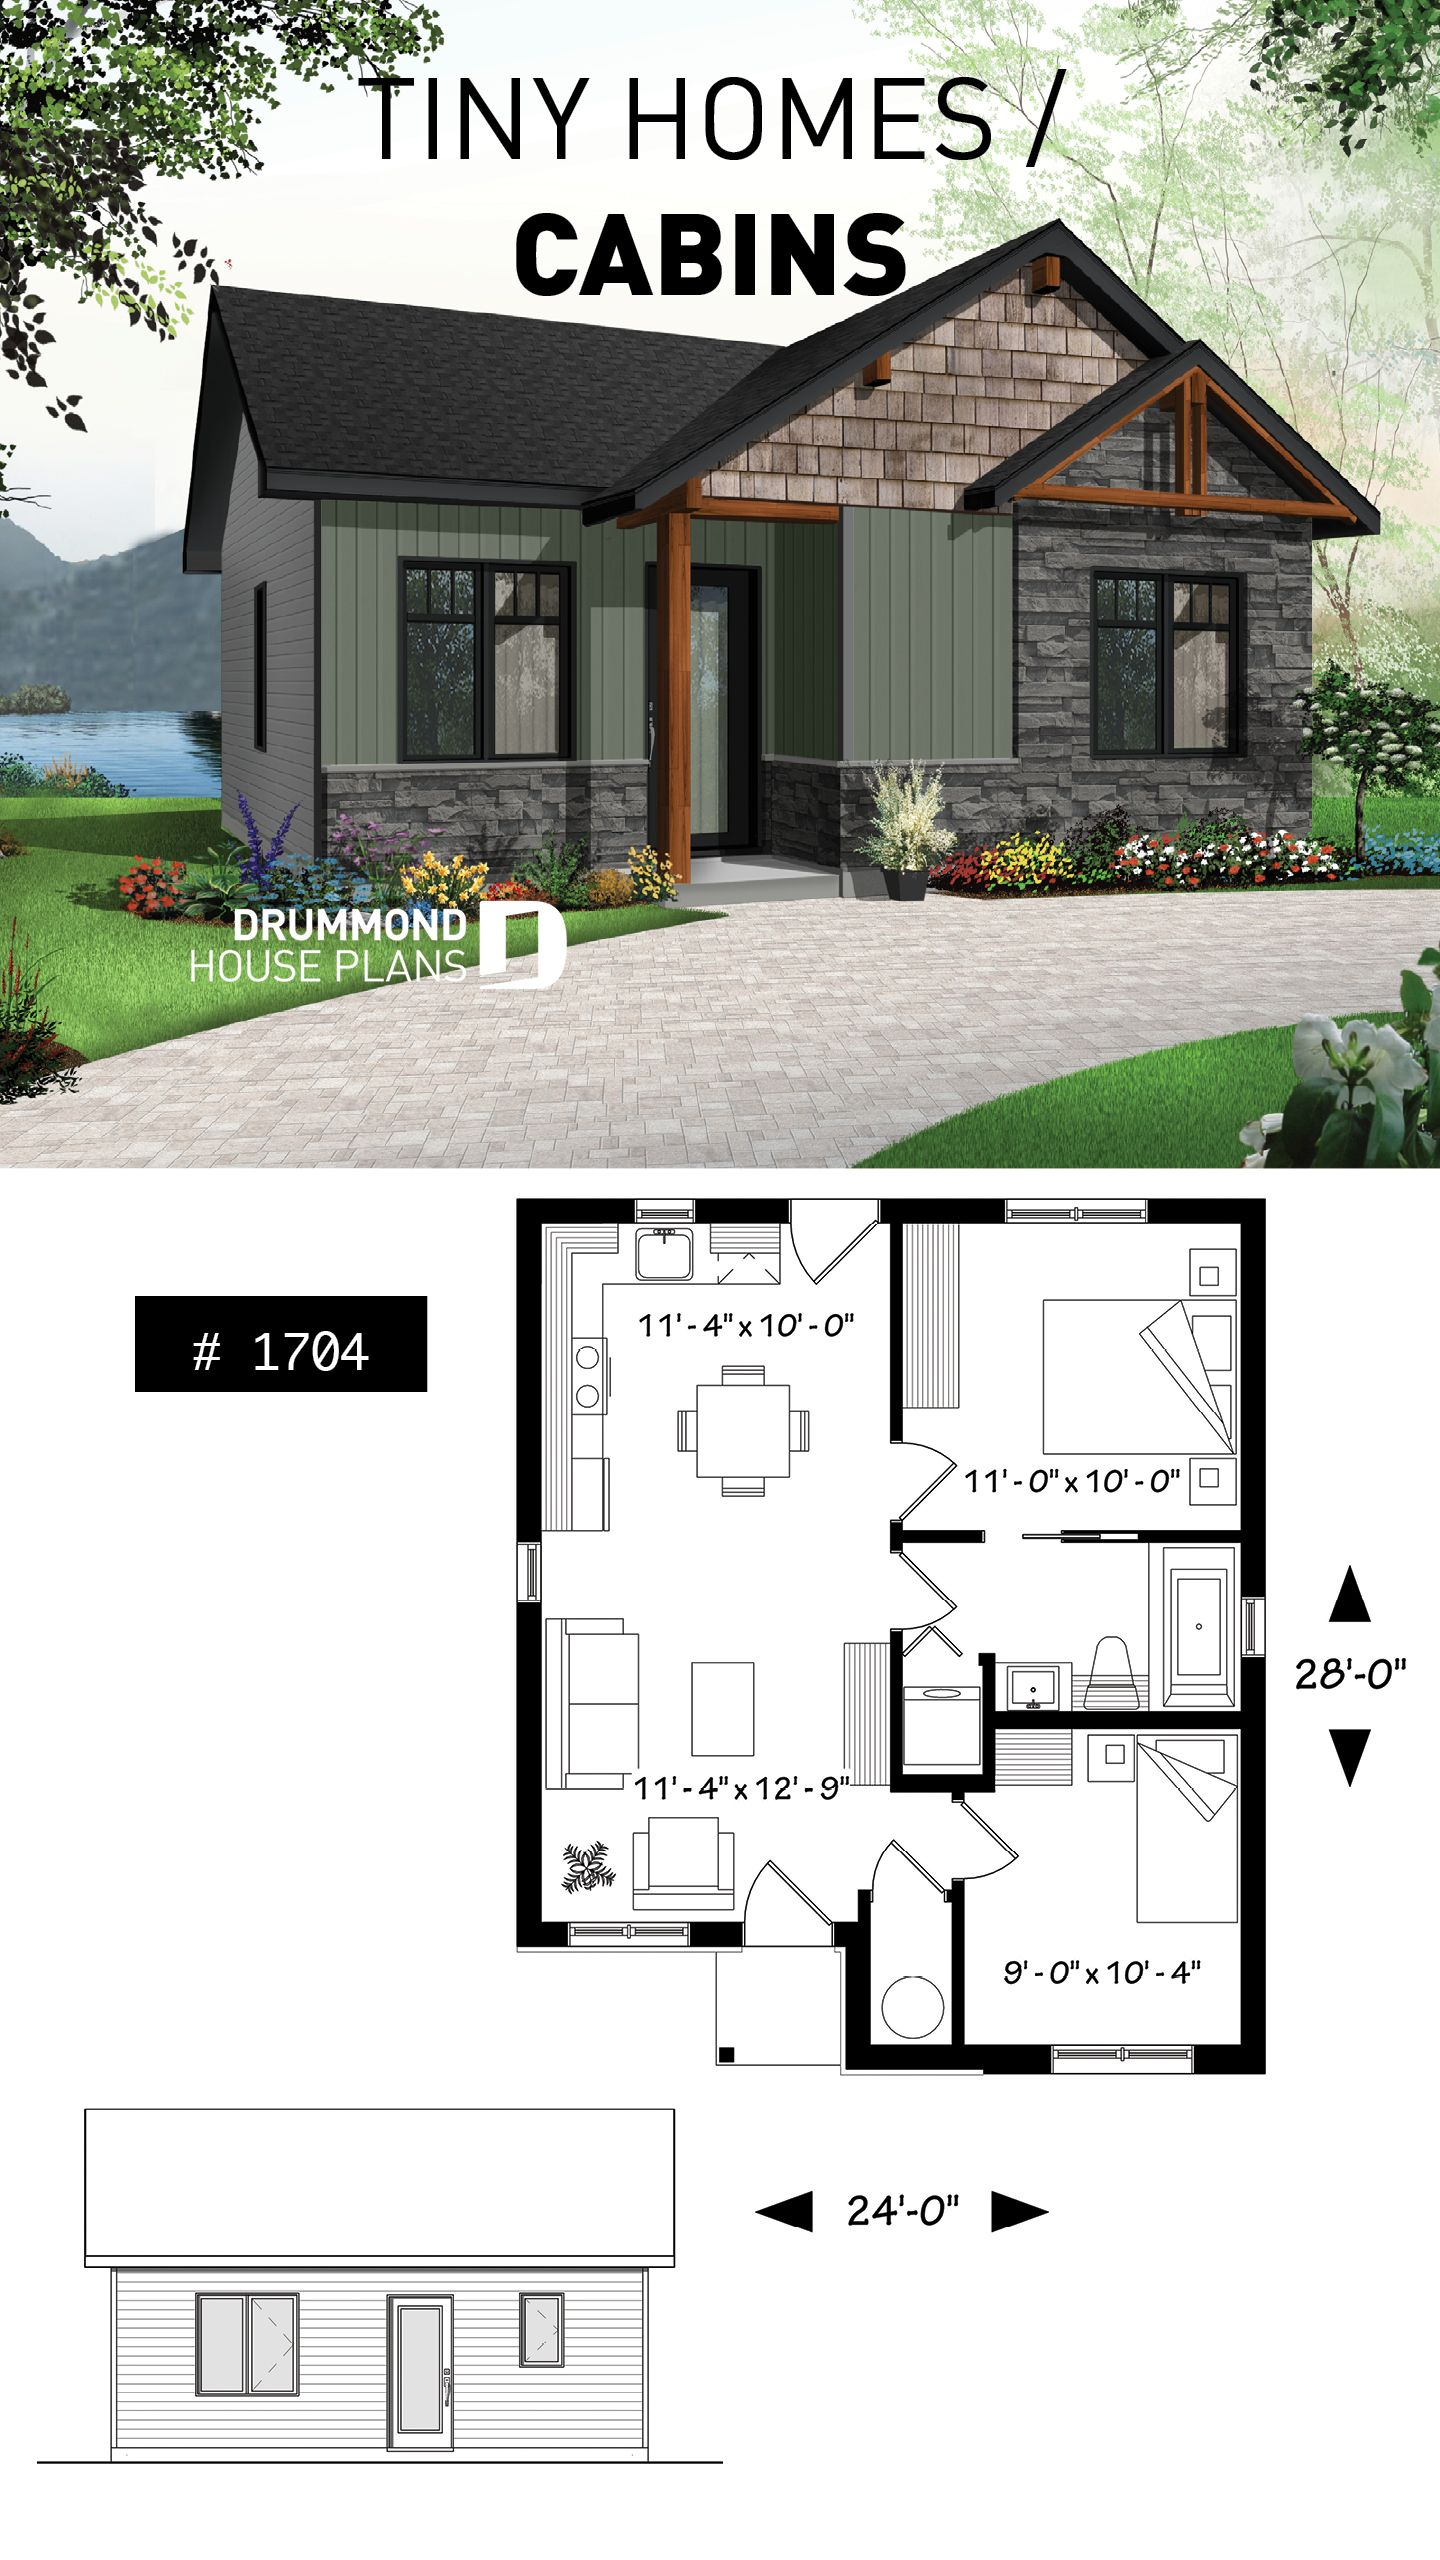 Pin by Dawn Cook on Just because I love it!!!!!! in 2019 | Tiny house, House  plans, Tiny house plans